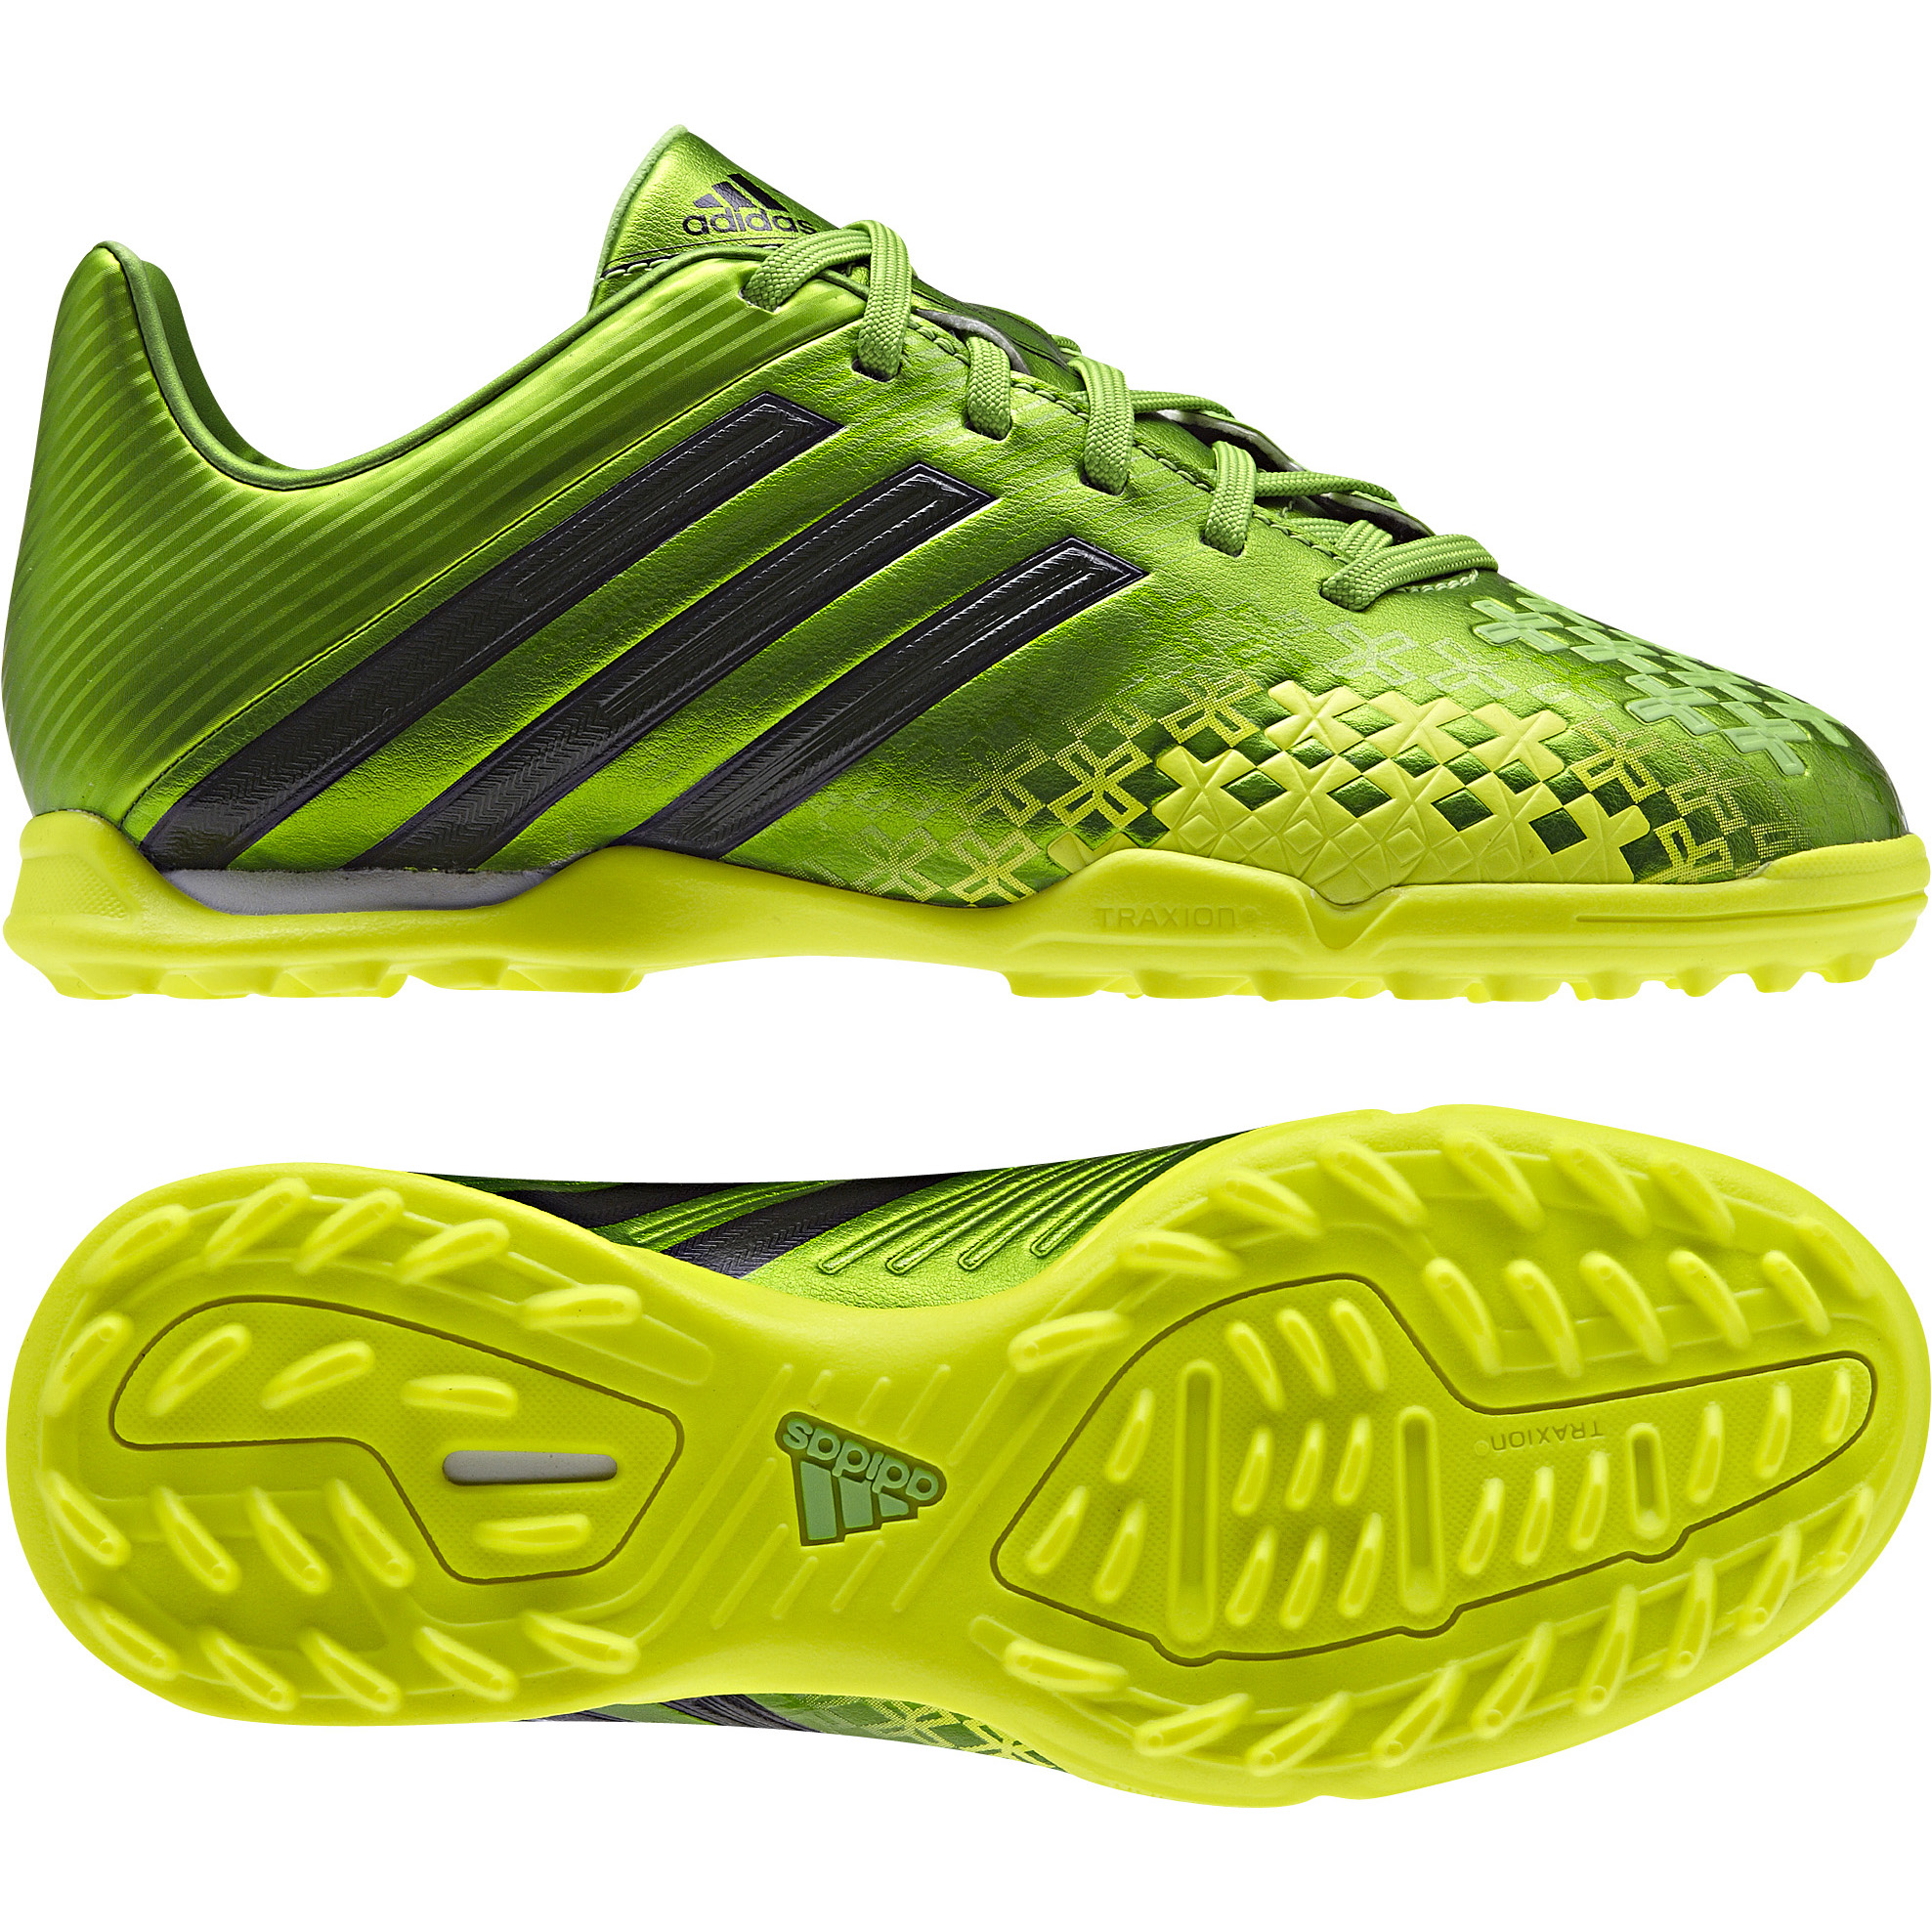 Adidas Predator Absolado LZ TRX Astroturf Trainers Green